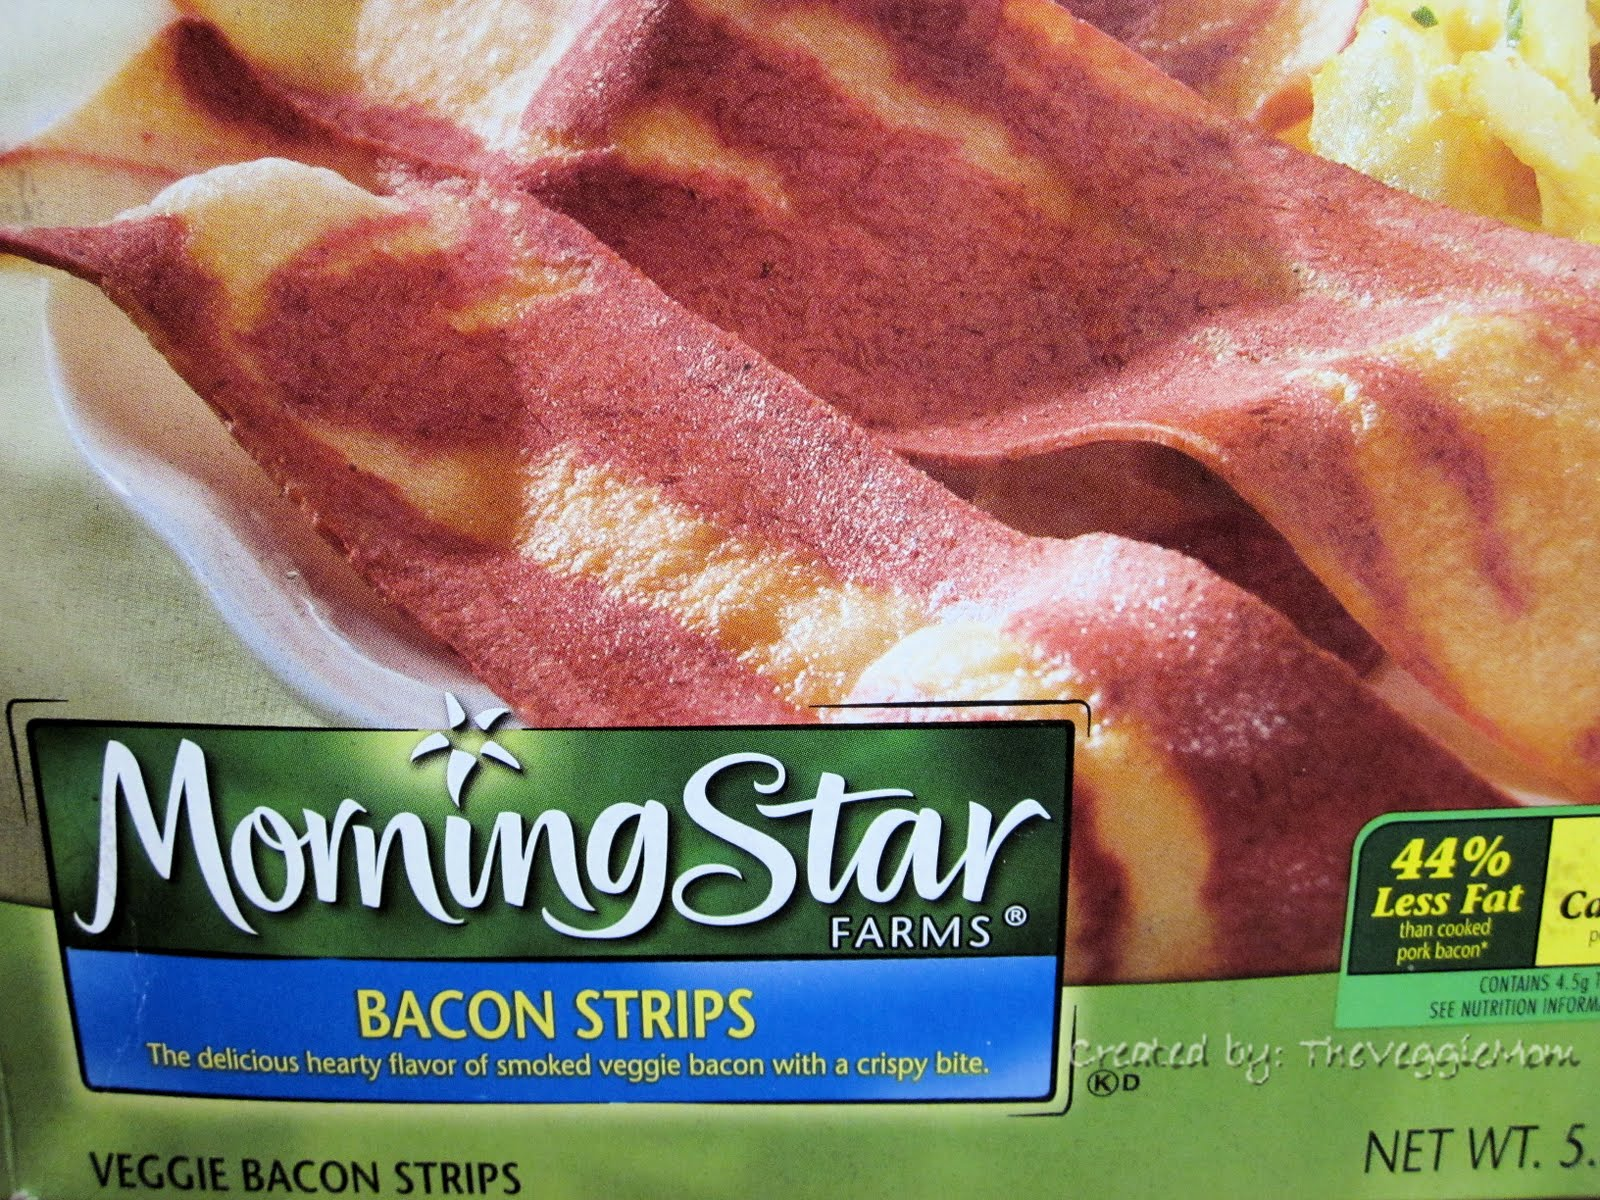 MorningStar Farms Meal Starters Grillers Crumbles, 12 Ounce -- 6 per Morningstar Farms Breakfast Sausage Patties, oz., ( count) by Morningstar Farms. $ $ 97 FREE Shipping on eligible orders. 3 out of 5 stars 1. Morningstar Farms Poultry Chicken Nuggets, Ounce - 6 per case.